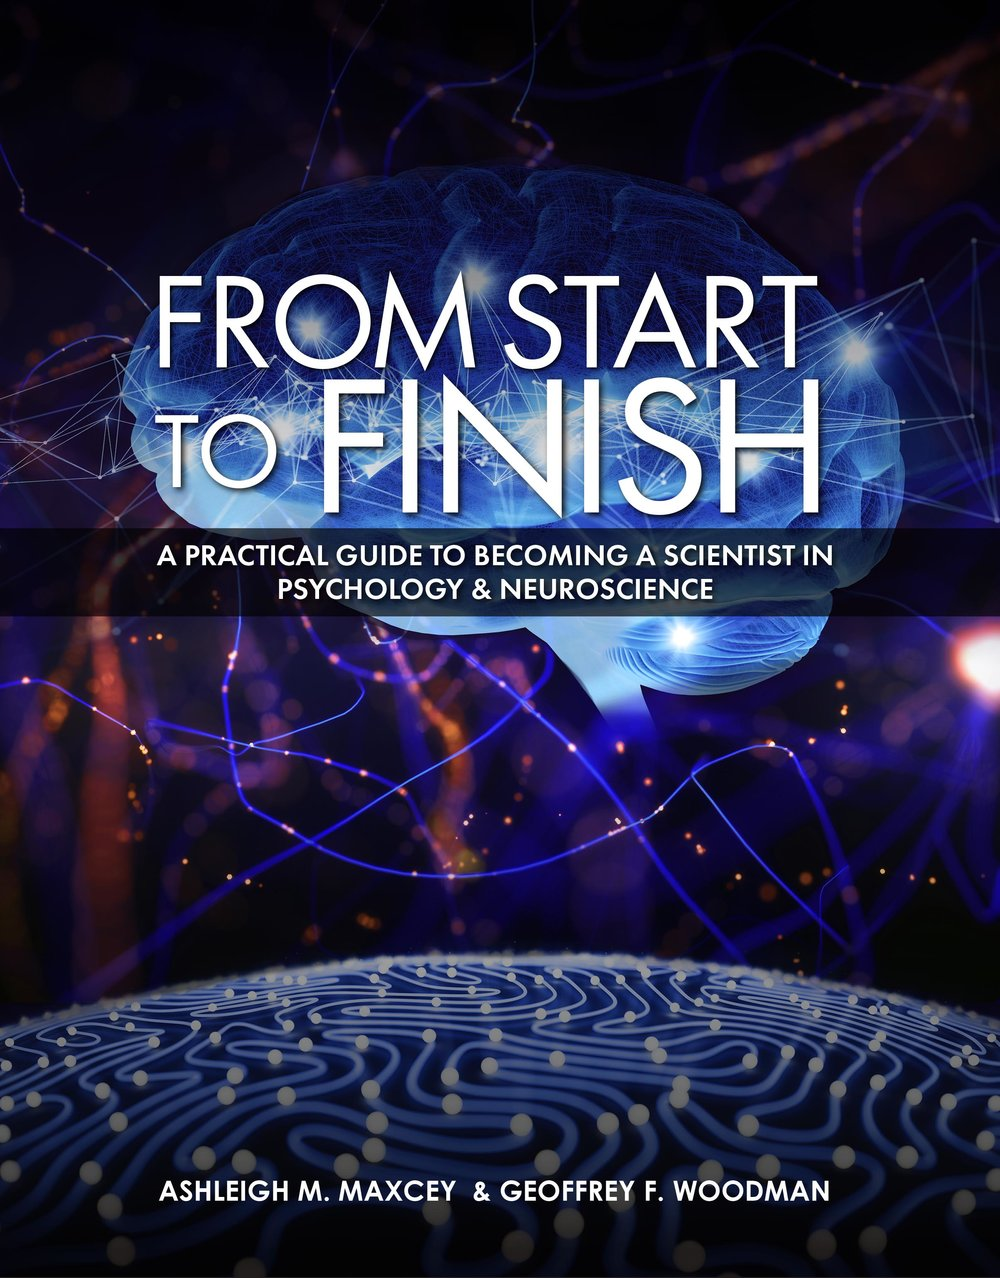 From Start to Finish: A Practical Guide to Becoming a Scientist in Psychology and Neuroscience - A career advice book, co-authored with Geoffrey F. Woodman, Ph.D. of Vanderbilt University, will be available December 2018. To be notified when this book is available, enter your email here.